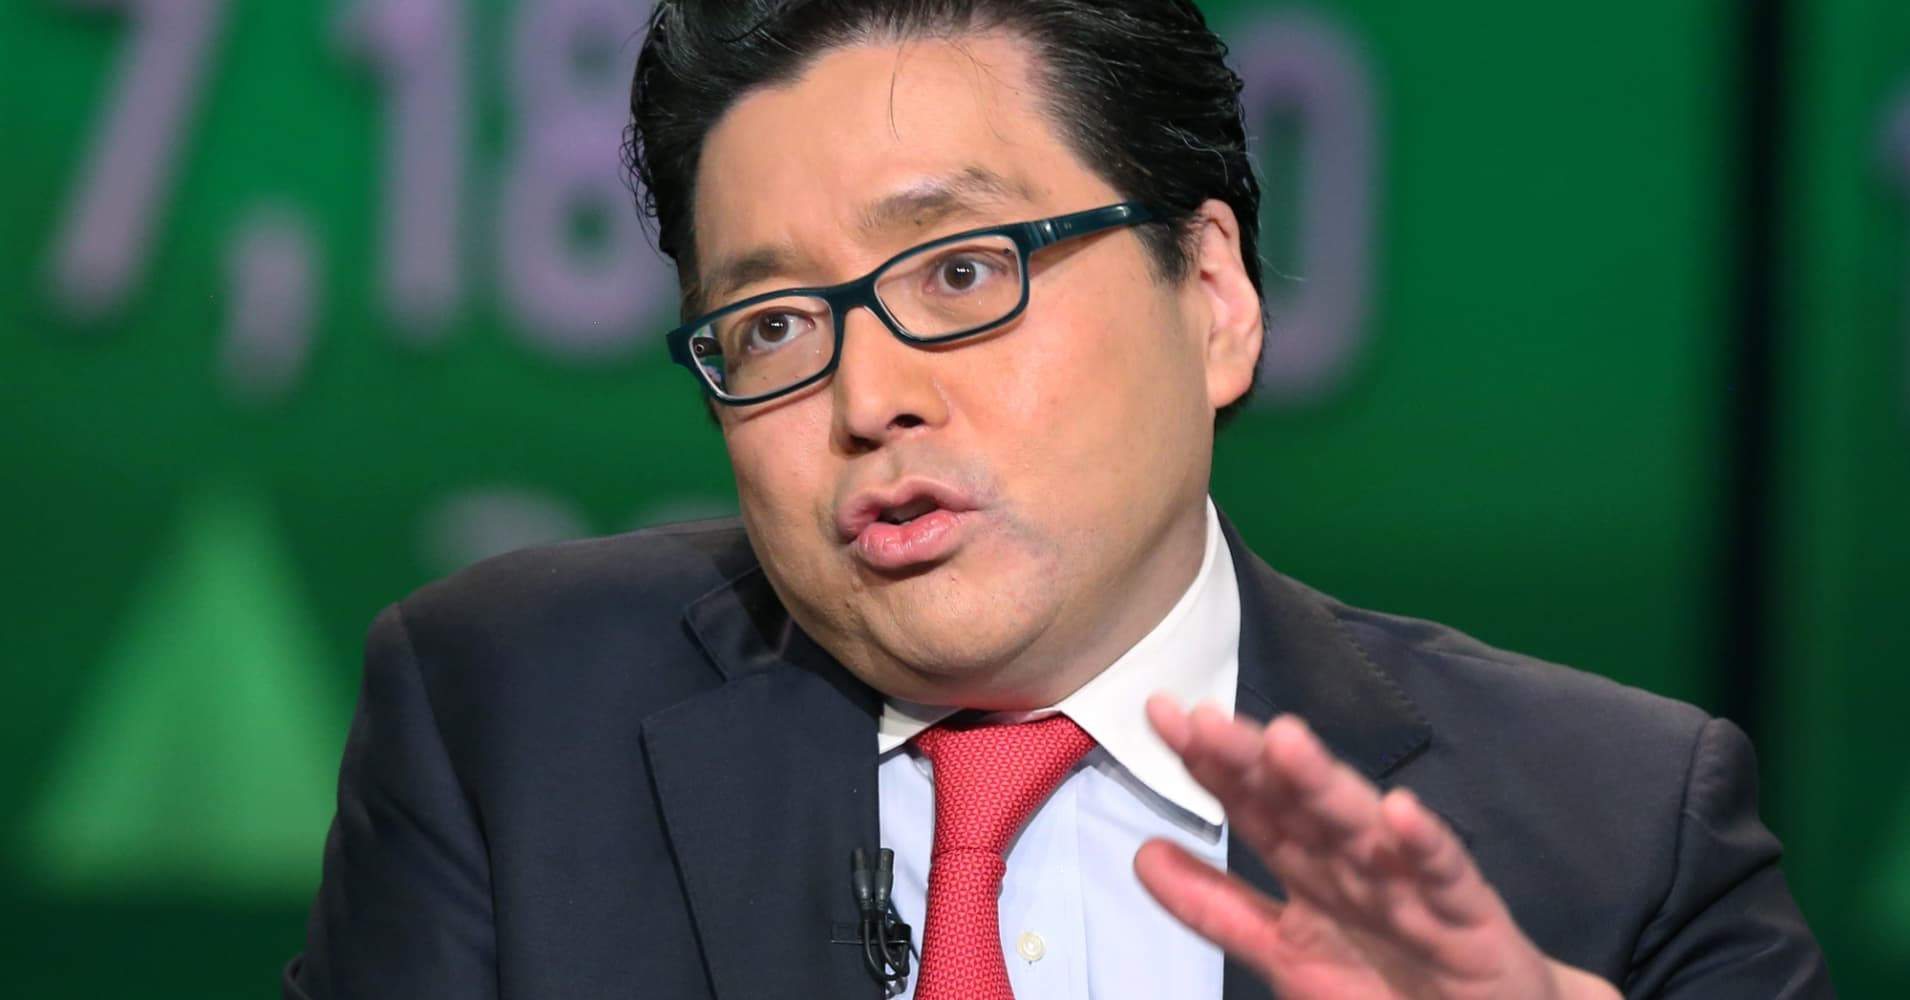 A 10% rally for the S&P 500 is possible by year-end: Fundstrat's Tom Lee